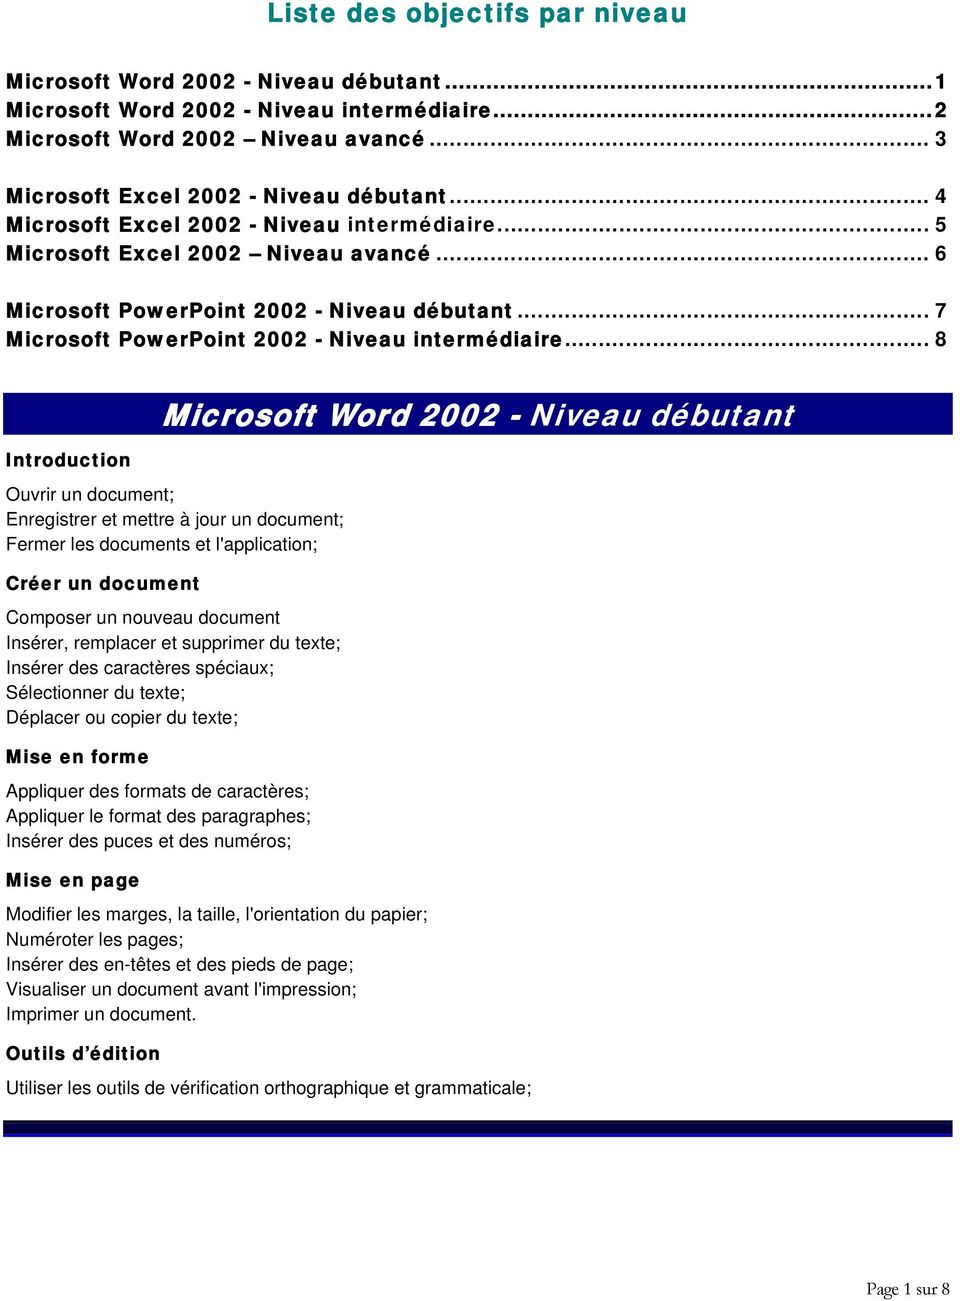 .. 8 Introduction Microsoft Word 2002 - Niveau débutant Ouvrir un document; Enregistrer et mettre à jour un document; Fermer les documents et l'application; Créer un document Composer un nouveau